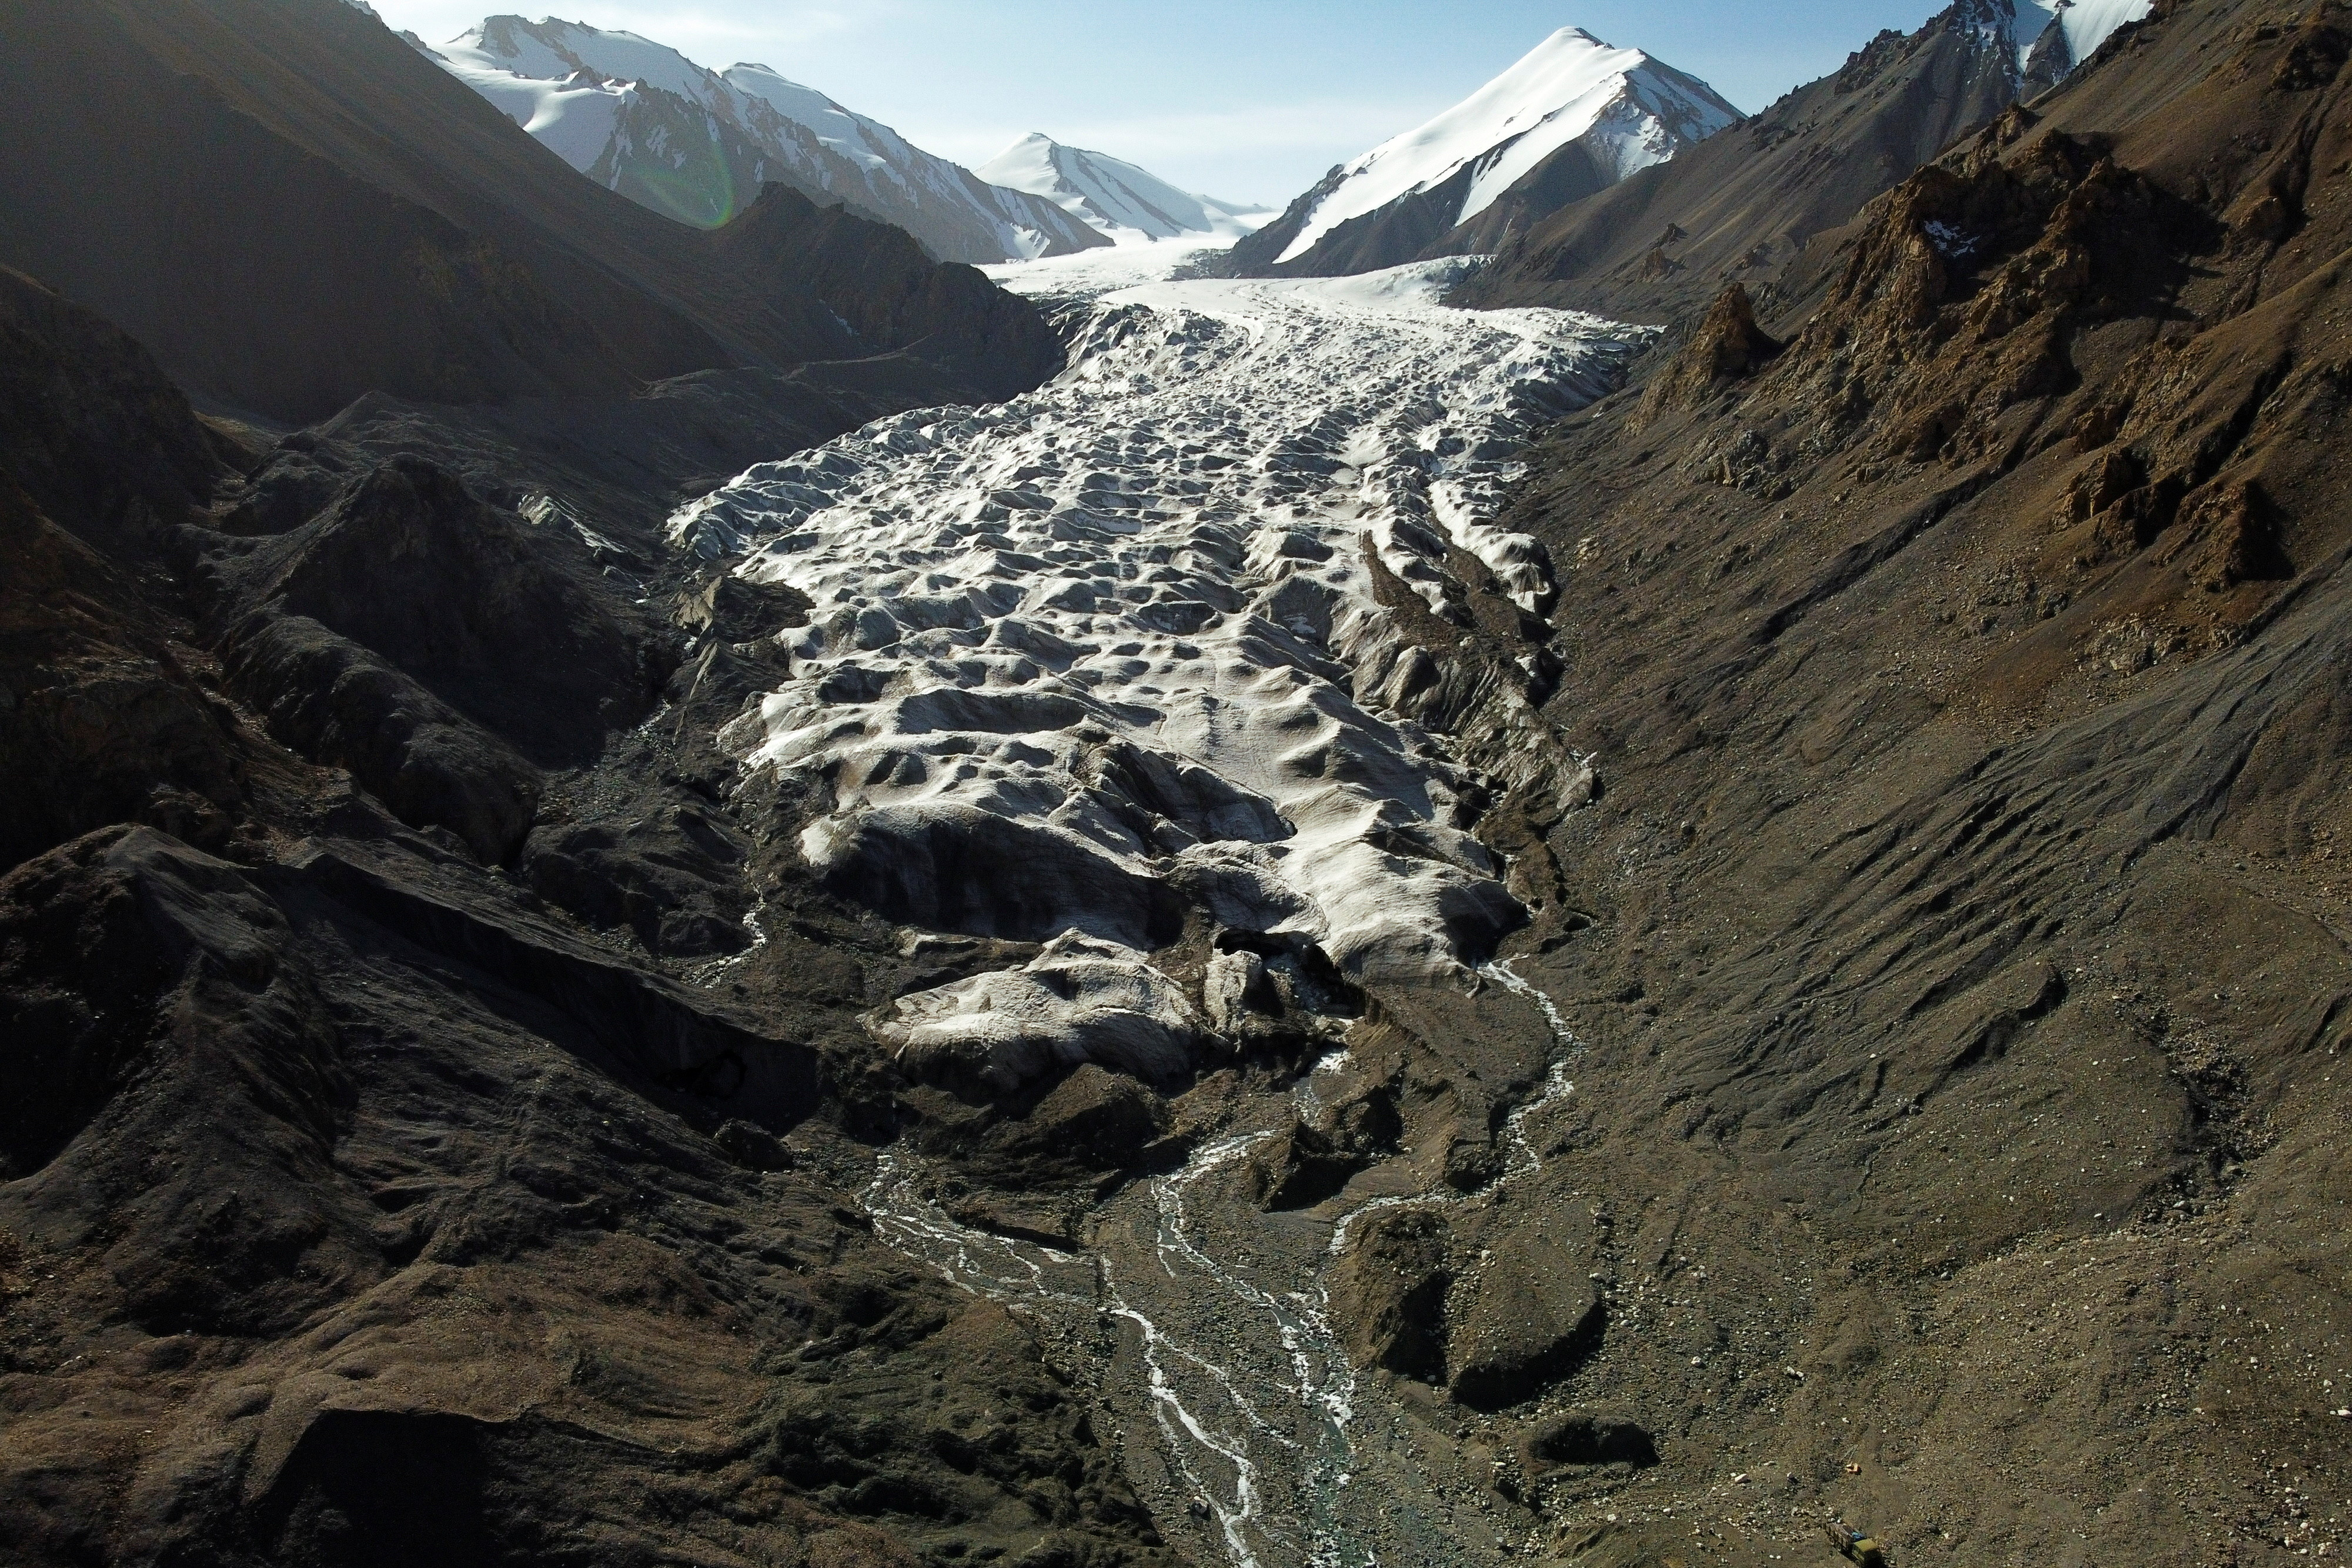 """Meltwater from the Laohugou No. 12 glacier, flows though the Qilian mountains, Subei Mongol Autonomous County in Gansu province, China, September 27, 2020. Glaciers in China's bleak, rugged Qilian mountains are disappearing at a shocking rate as global warming brings unpredictable change and raises the prospect of crippling, long-term water shortages, scientists say. The largest glacier in the 800-km (500-mile) mountain chain on the arid northeastern edge of the Tibetan plateau has retreated about 450 metres since the 1950s, when researchers set up China's first monitoring station to study it. Picture taken with a drone. REUTERS/Carlos Garcia Rawlins     SEARCH """"RAWLINS GLACIER"""" FOR THIS STORY. SEARCH """"WIDER IMAGE"""" FOR ALL STORIES. - RC2ZZJ9REZ5E"""